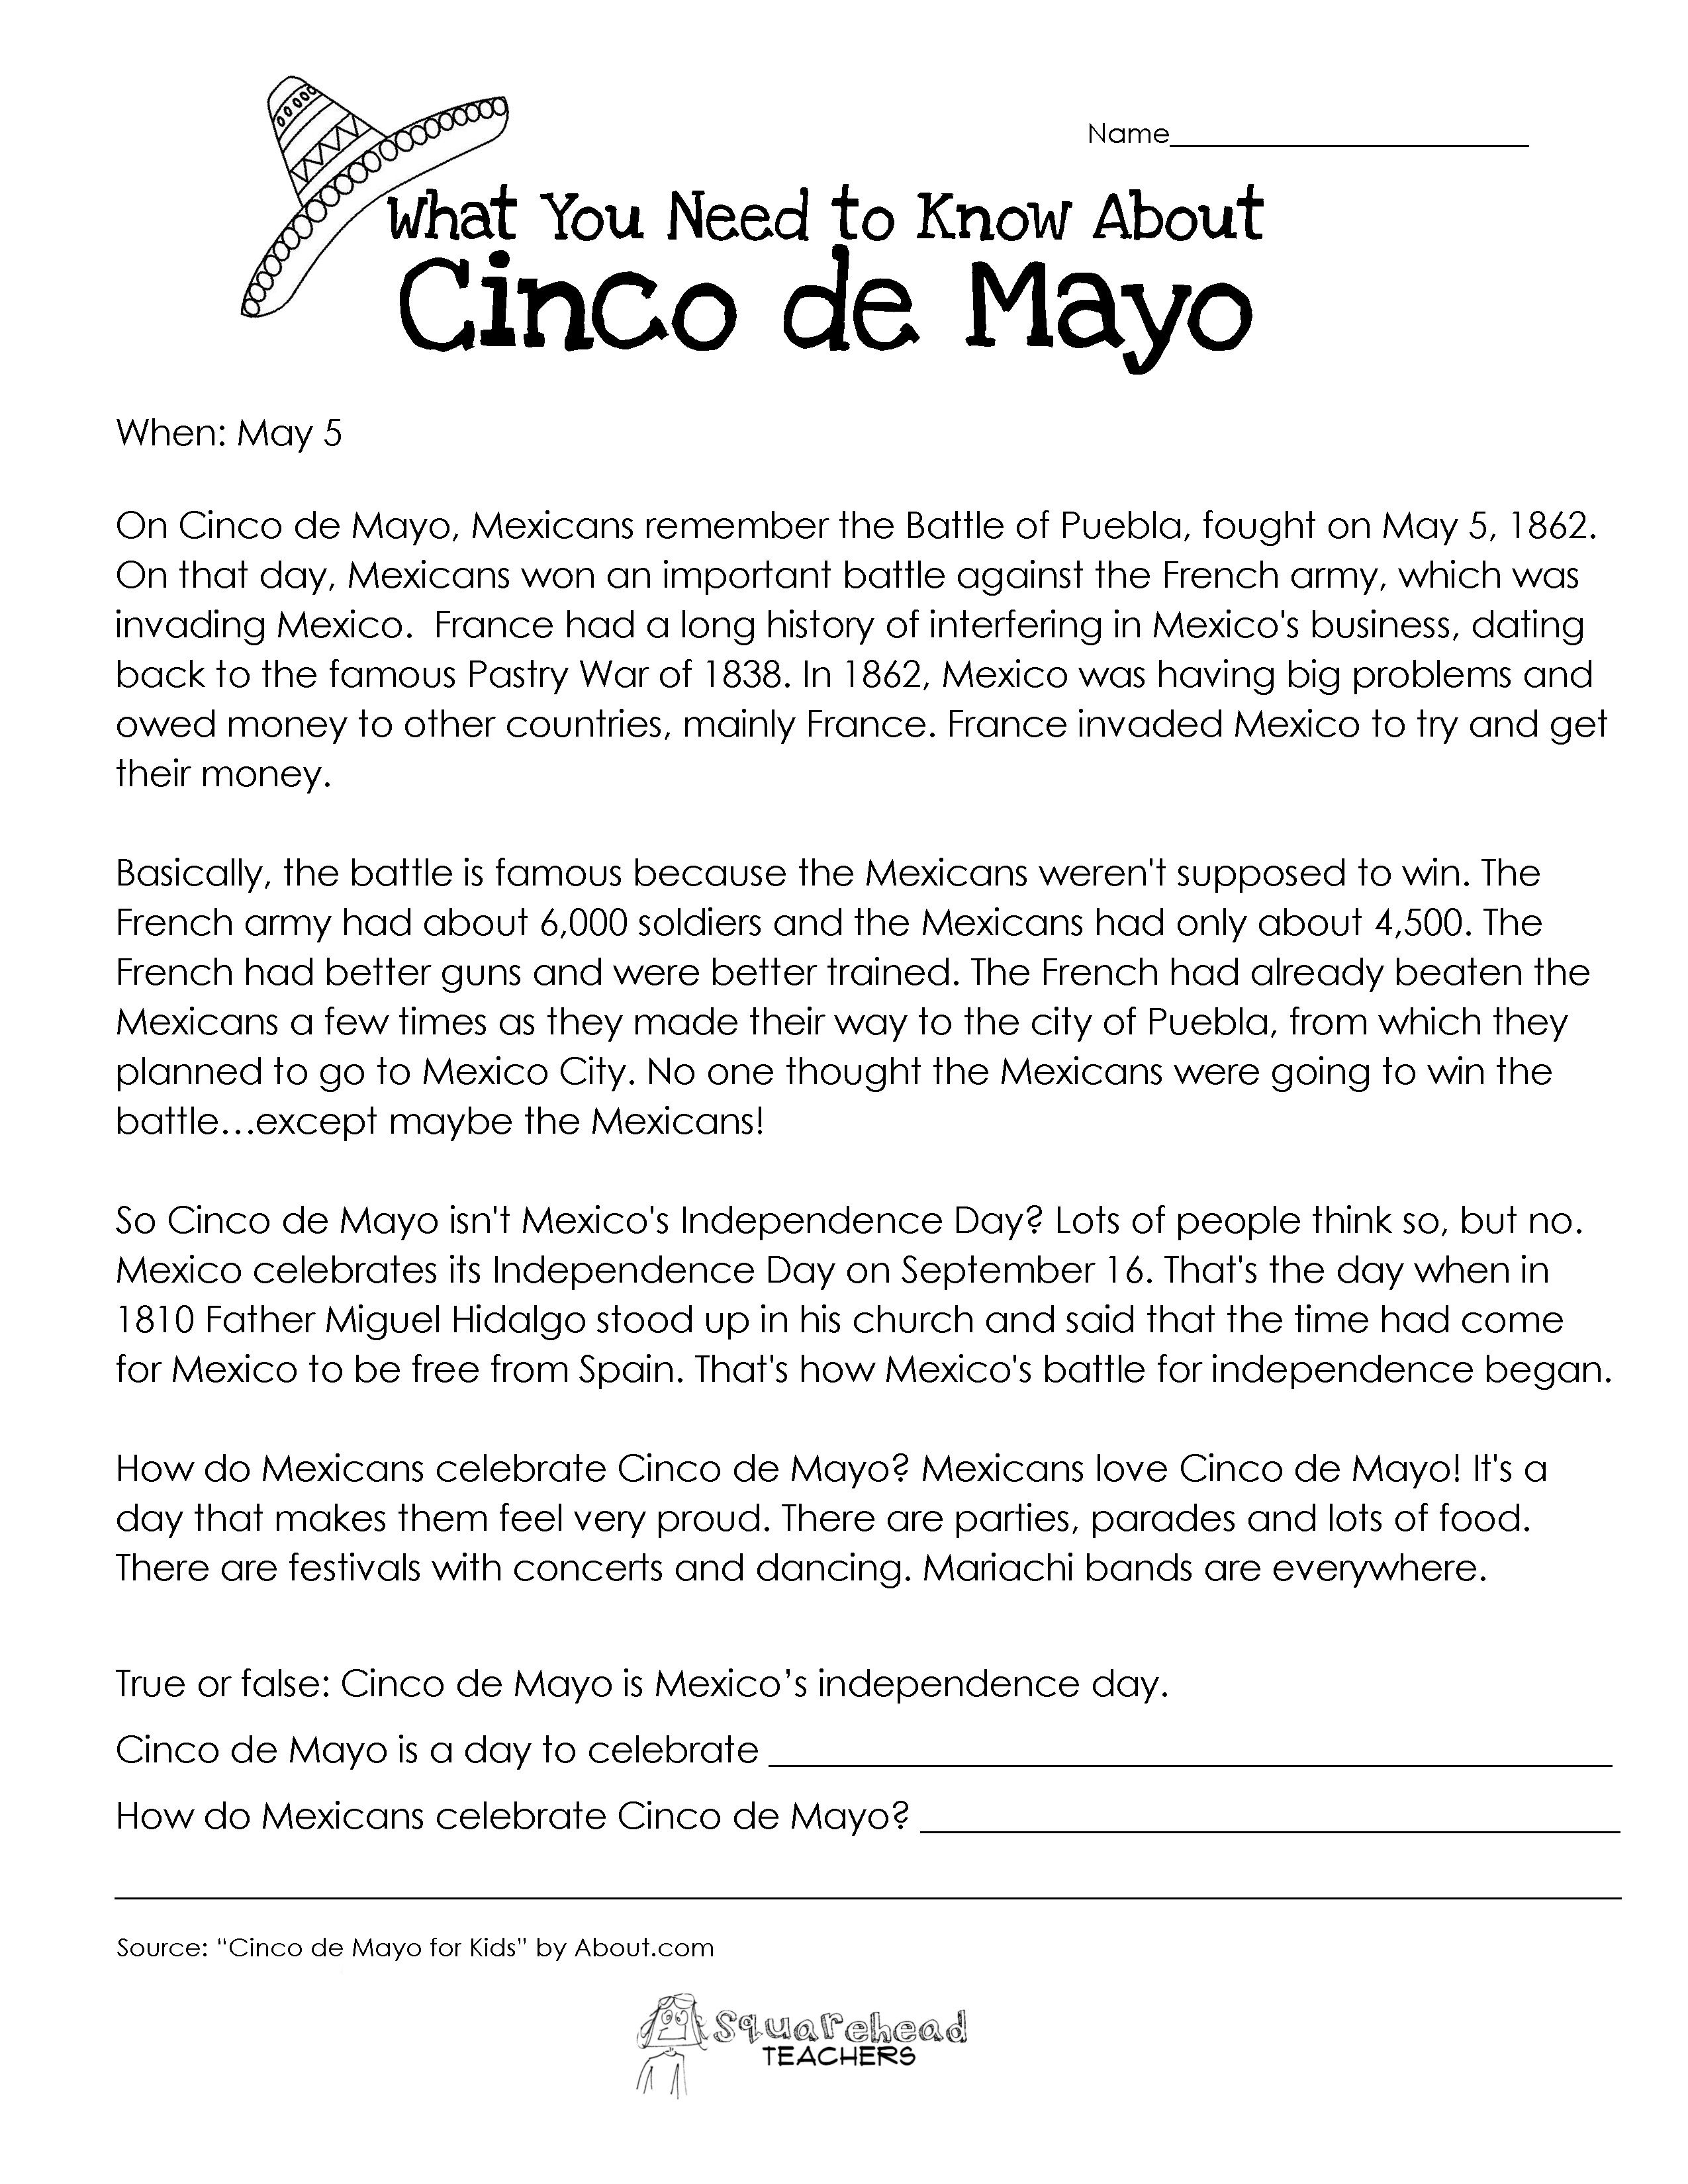 What You Need To Know About Cinco De Mayo